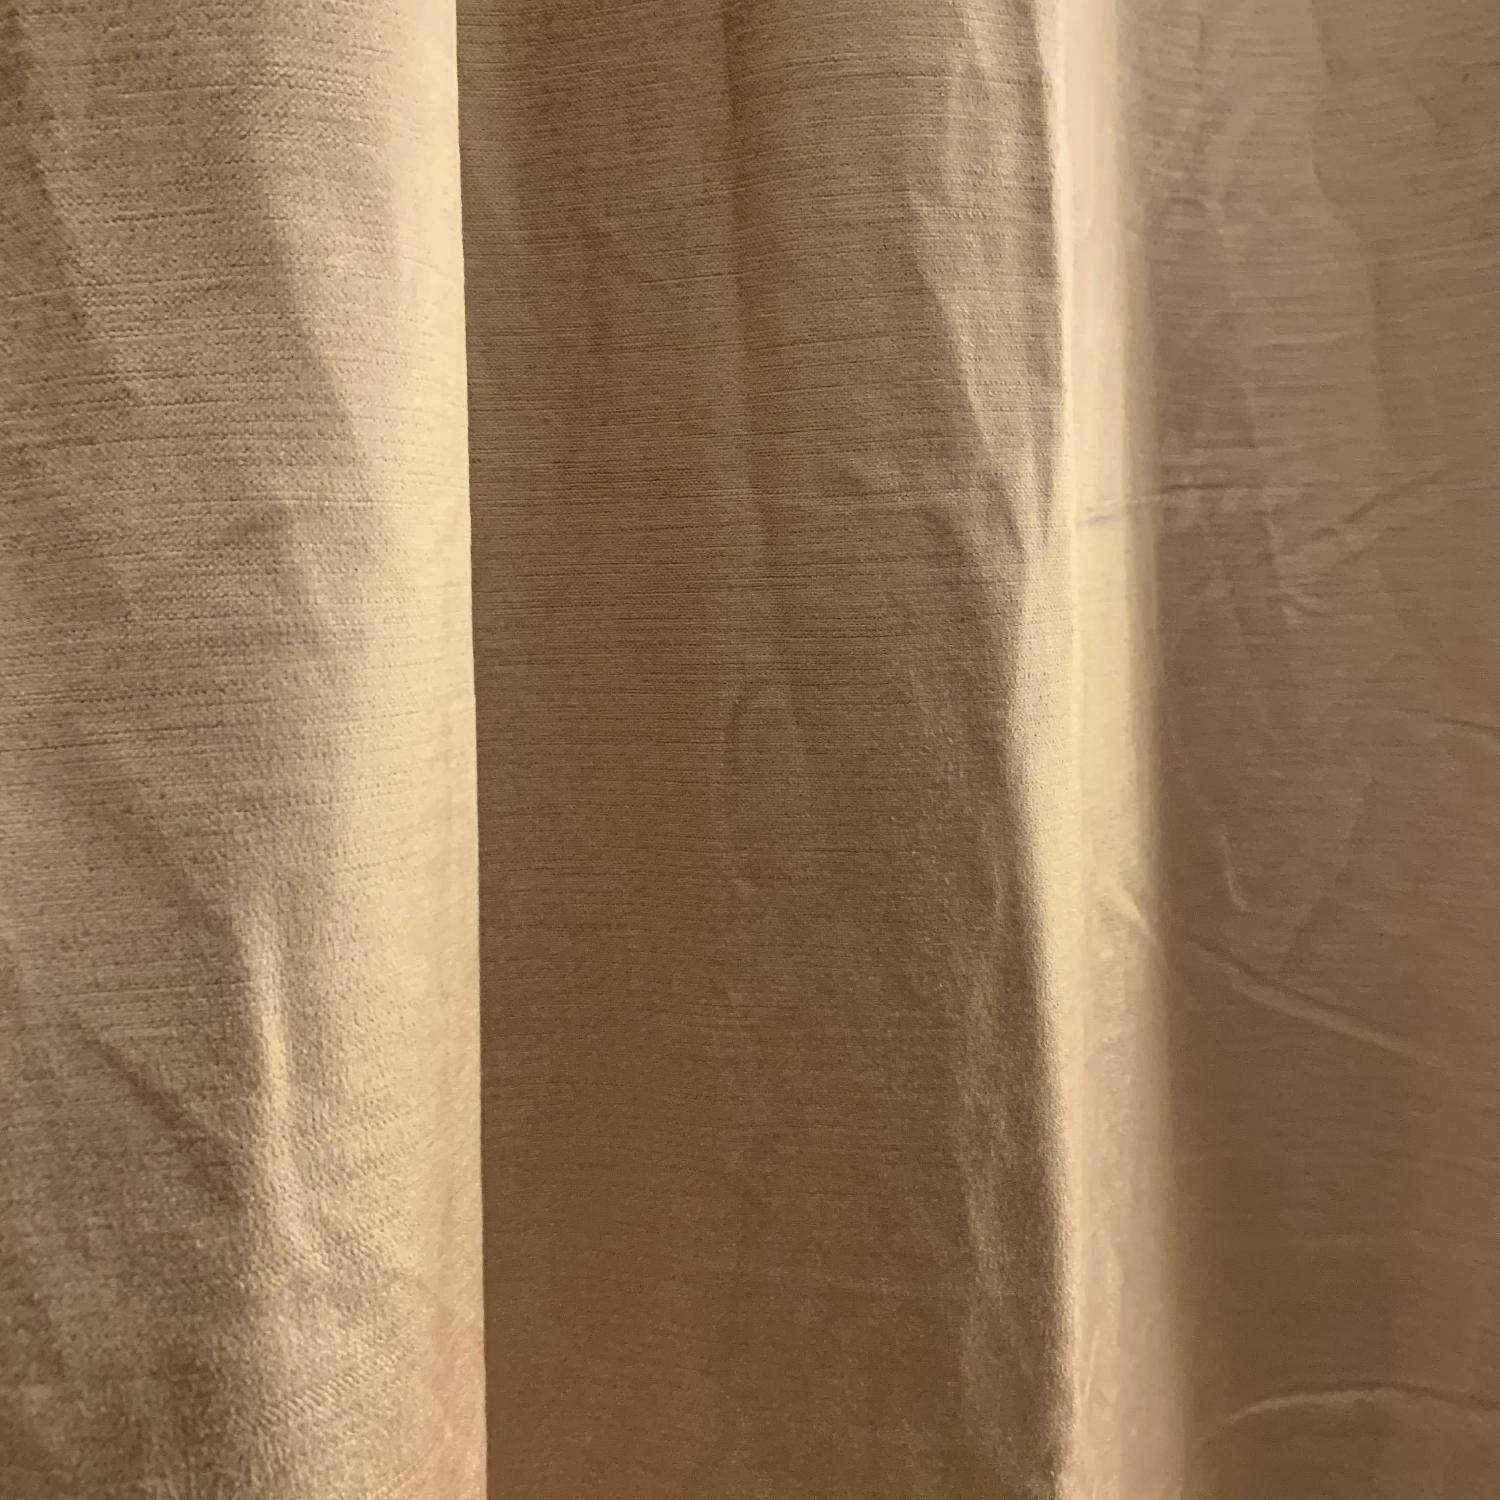 West Elm Cotton Luster Velvet Curtains in Dusty Blush-2